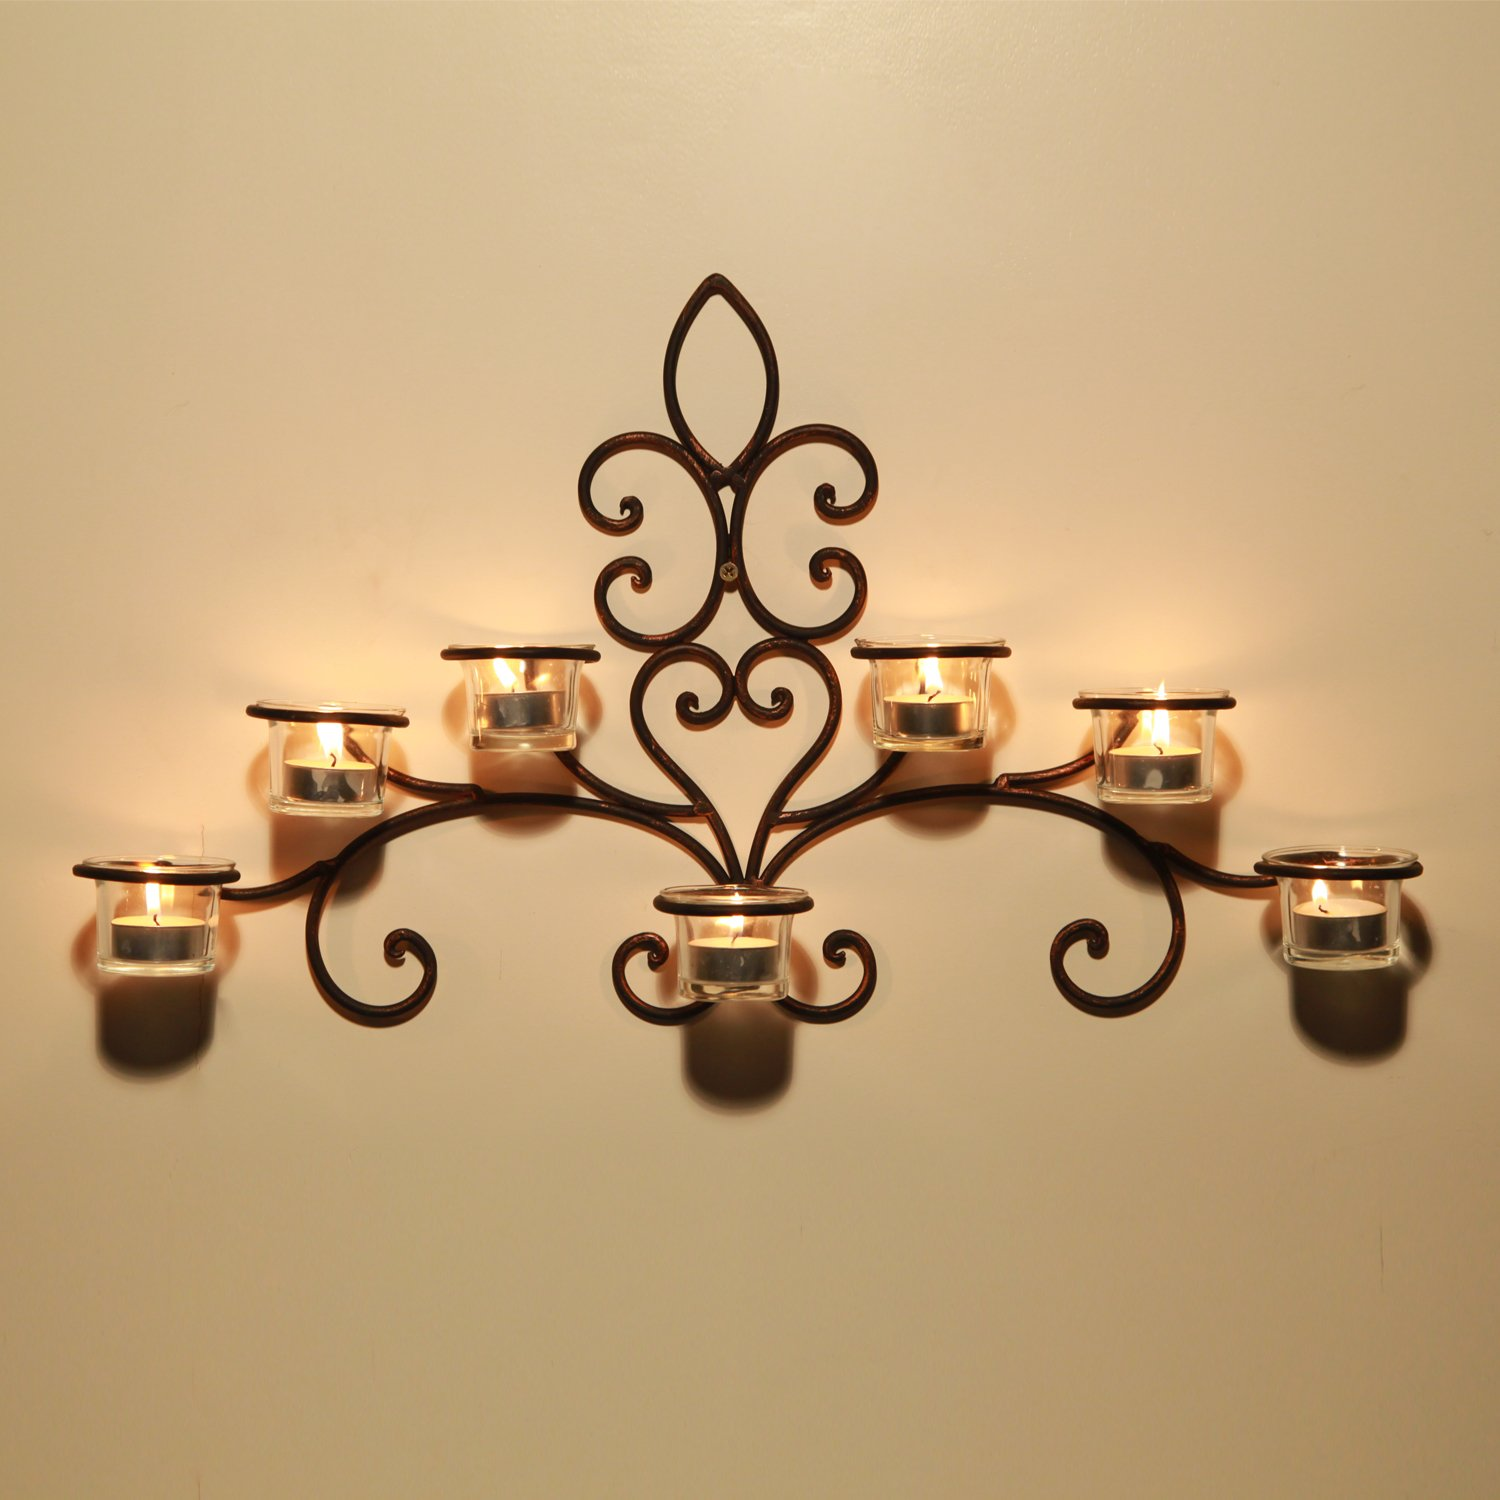 in furnishing hanging sconce item candlestick from colors holders candle iron home shelf decoration gift valentine handmade wall articles holder